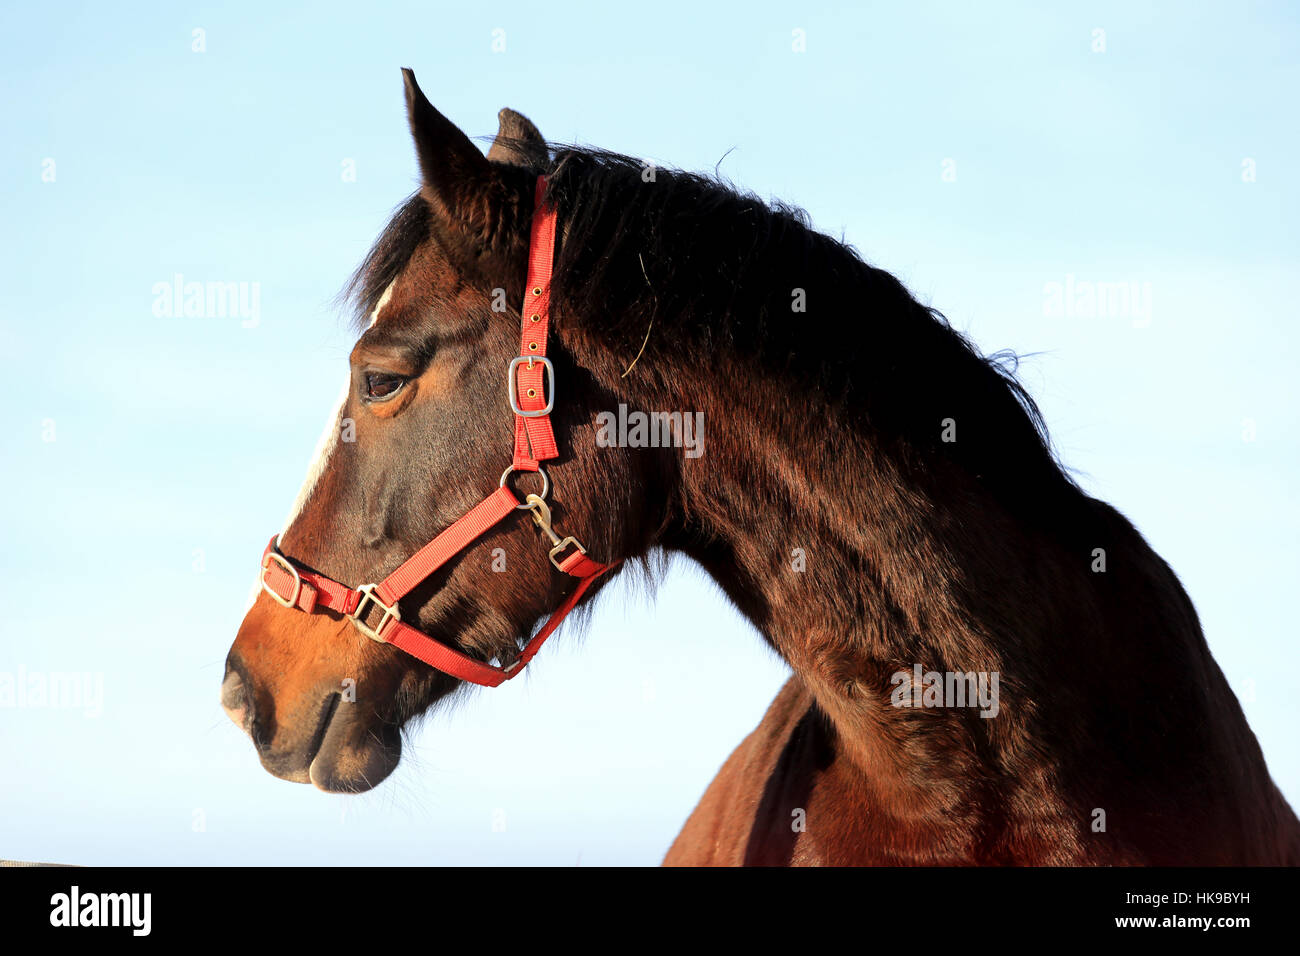 Close up portrait of beautiful bay thoroughbred horse head against blue sky. - Stock Image